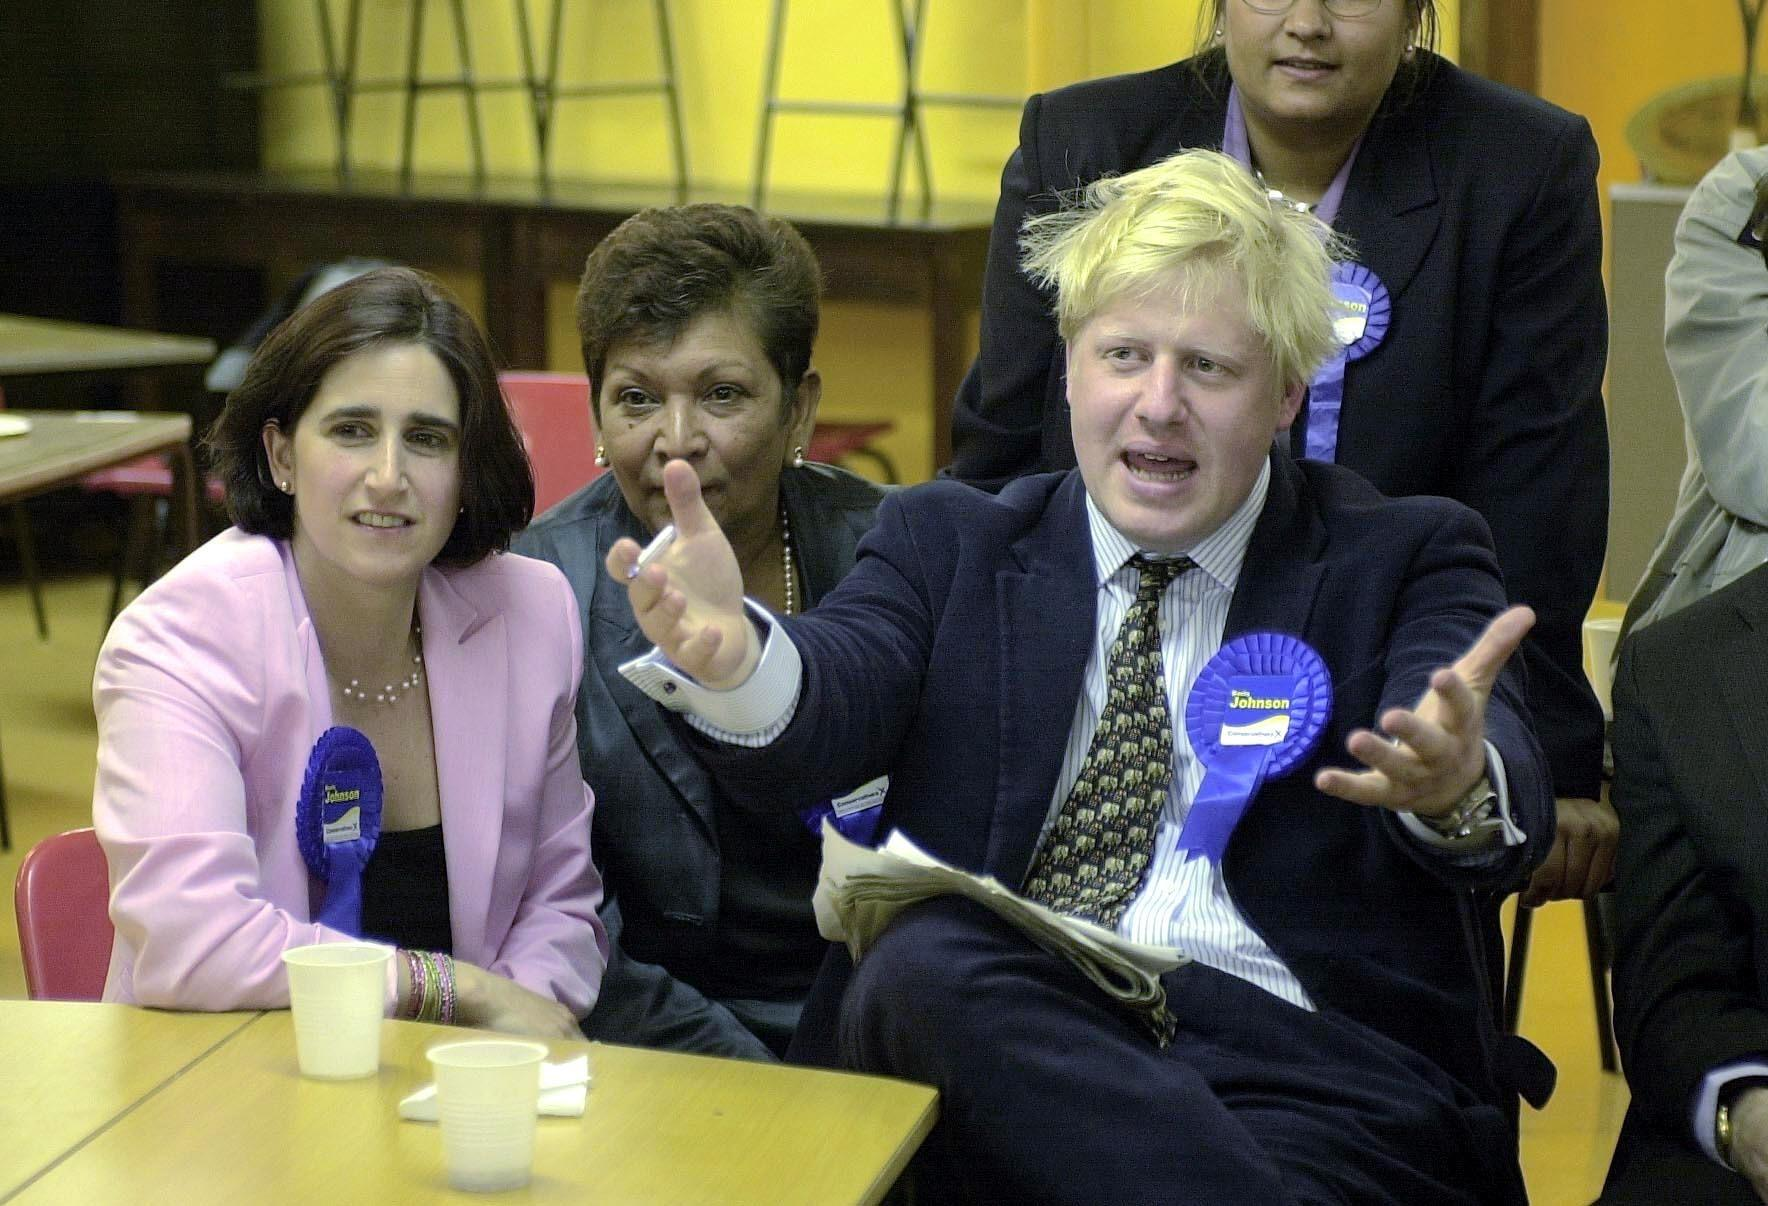 Boris Johnson watches the election results with his wife Marina (L), at the count in Watlington, Oxfordshire, after winning the Henley seat for the Conservatives in the 2001 General Election. The seat was Michael Heseltine's, who has stepped down at this election.